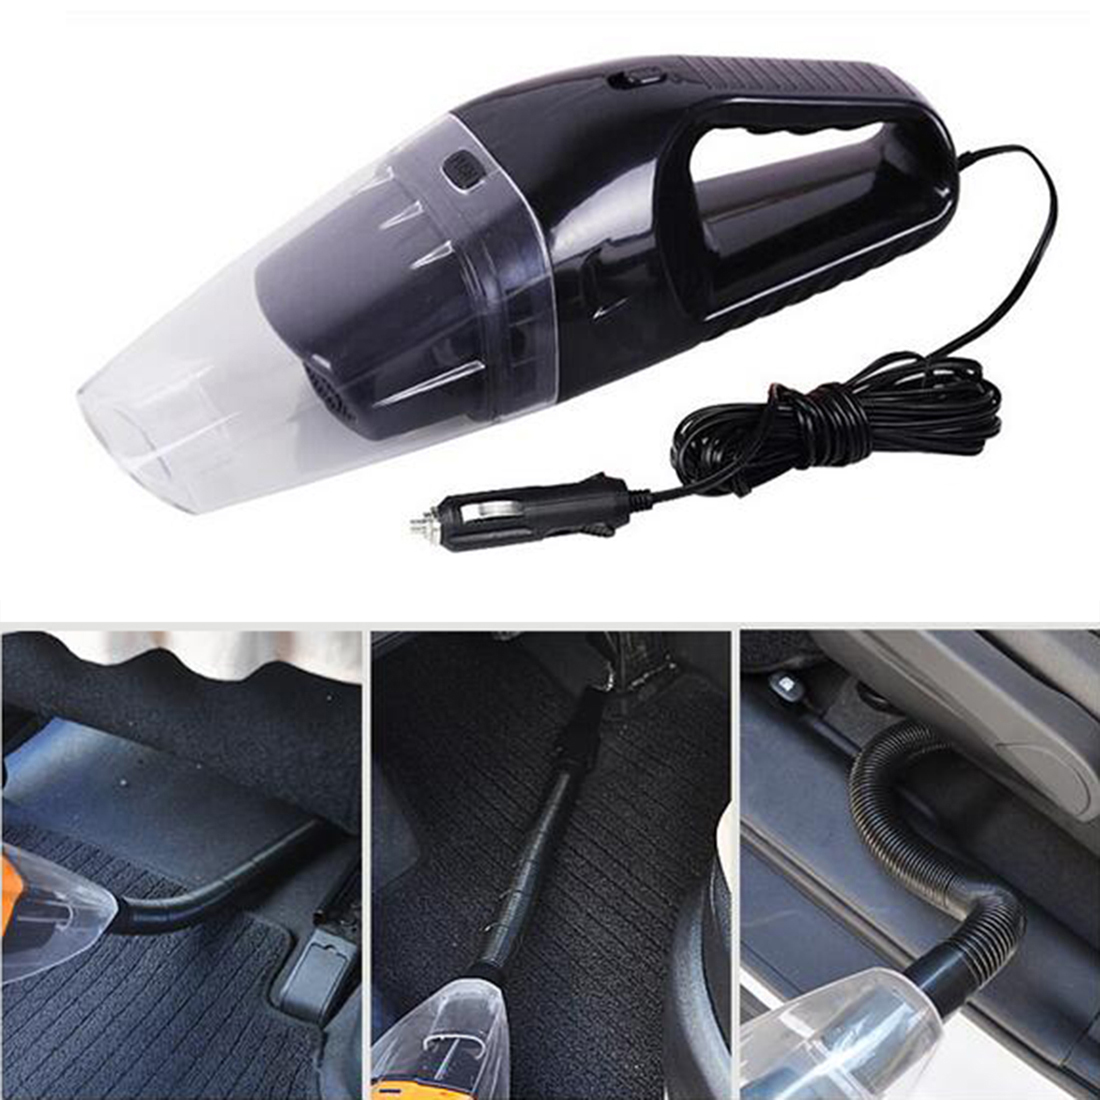 2016 Autos Parts Portable Car Vacuum Cleaner Wet And Dry Dual-Use Super Suction 5Meter 12V 120W(China (Mainland))